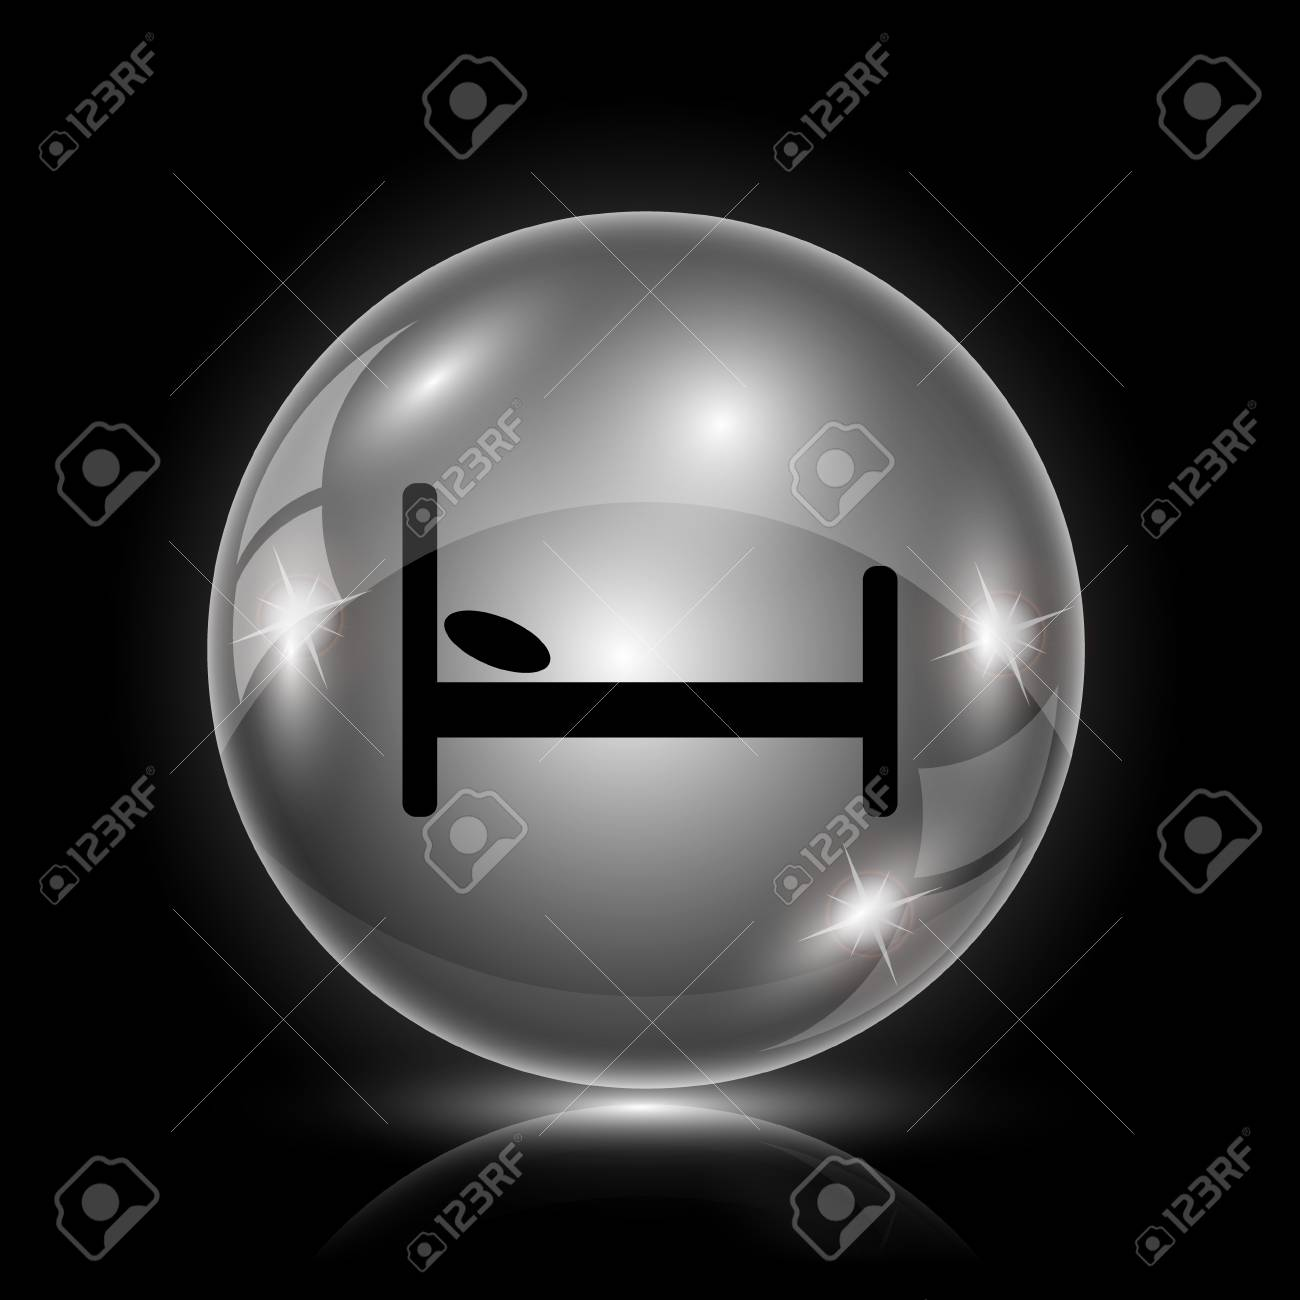 Shiny glossy icon - glass ball on black background Stock Vector - 26377432